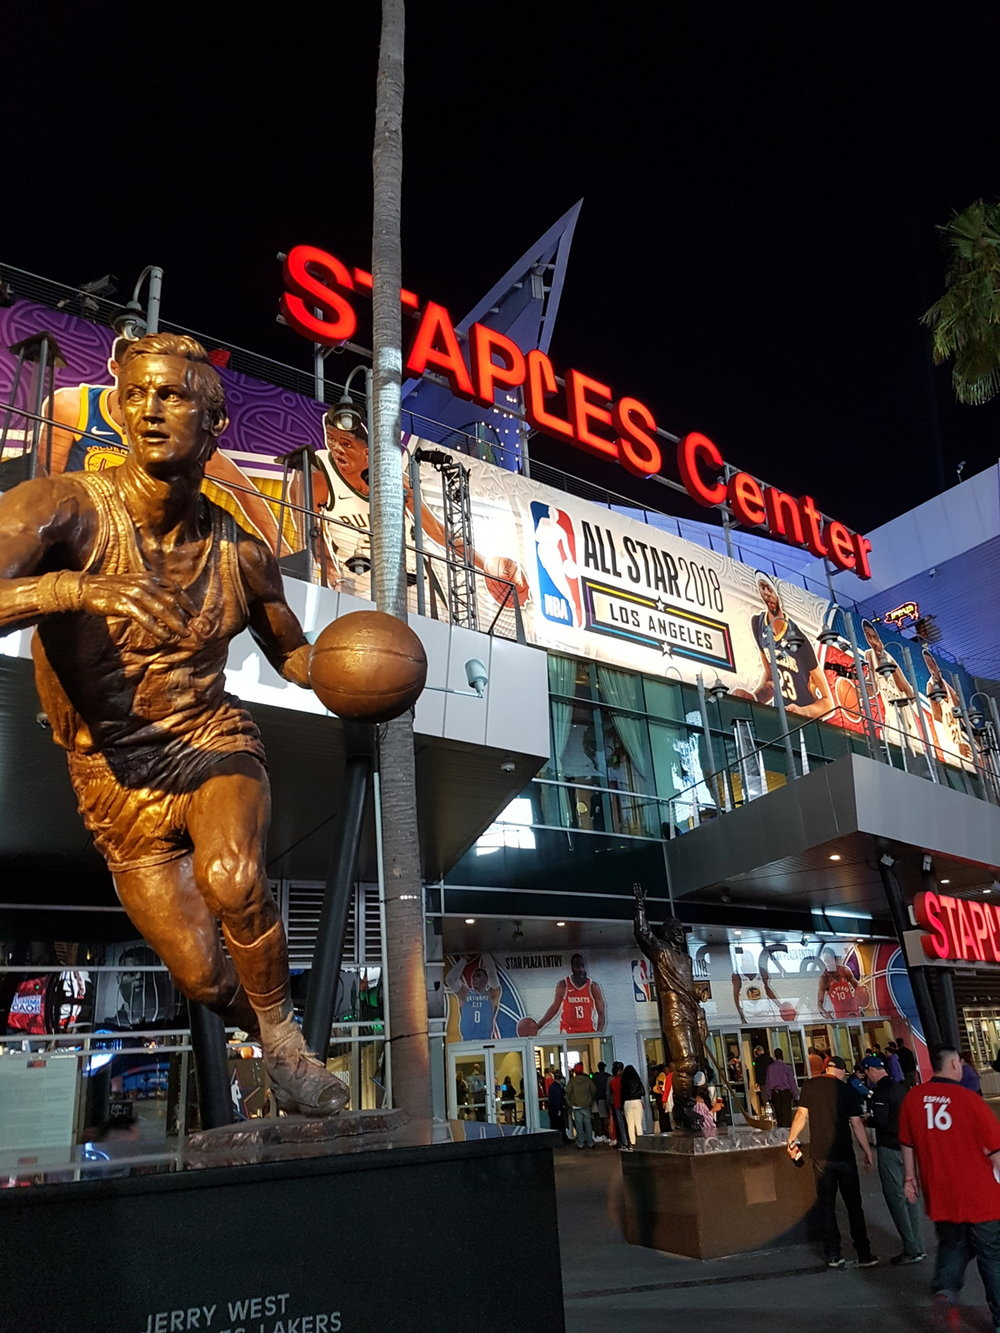 All Star Weekend at Staples Center